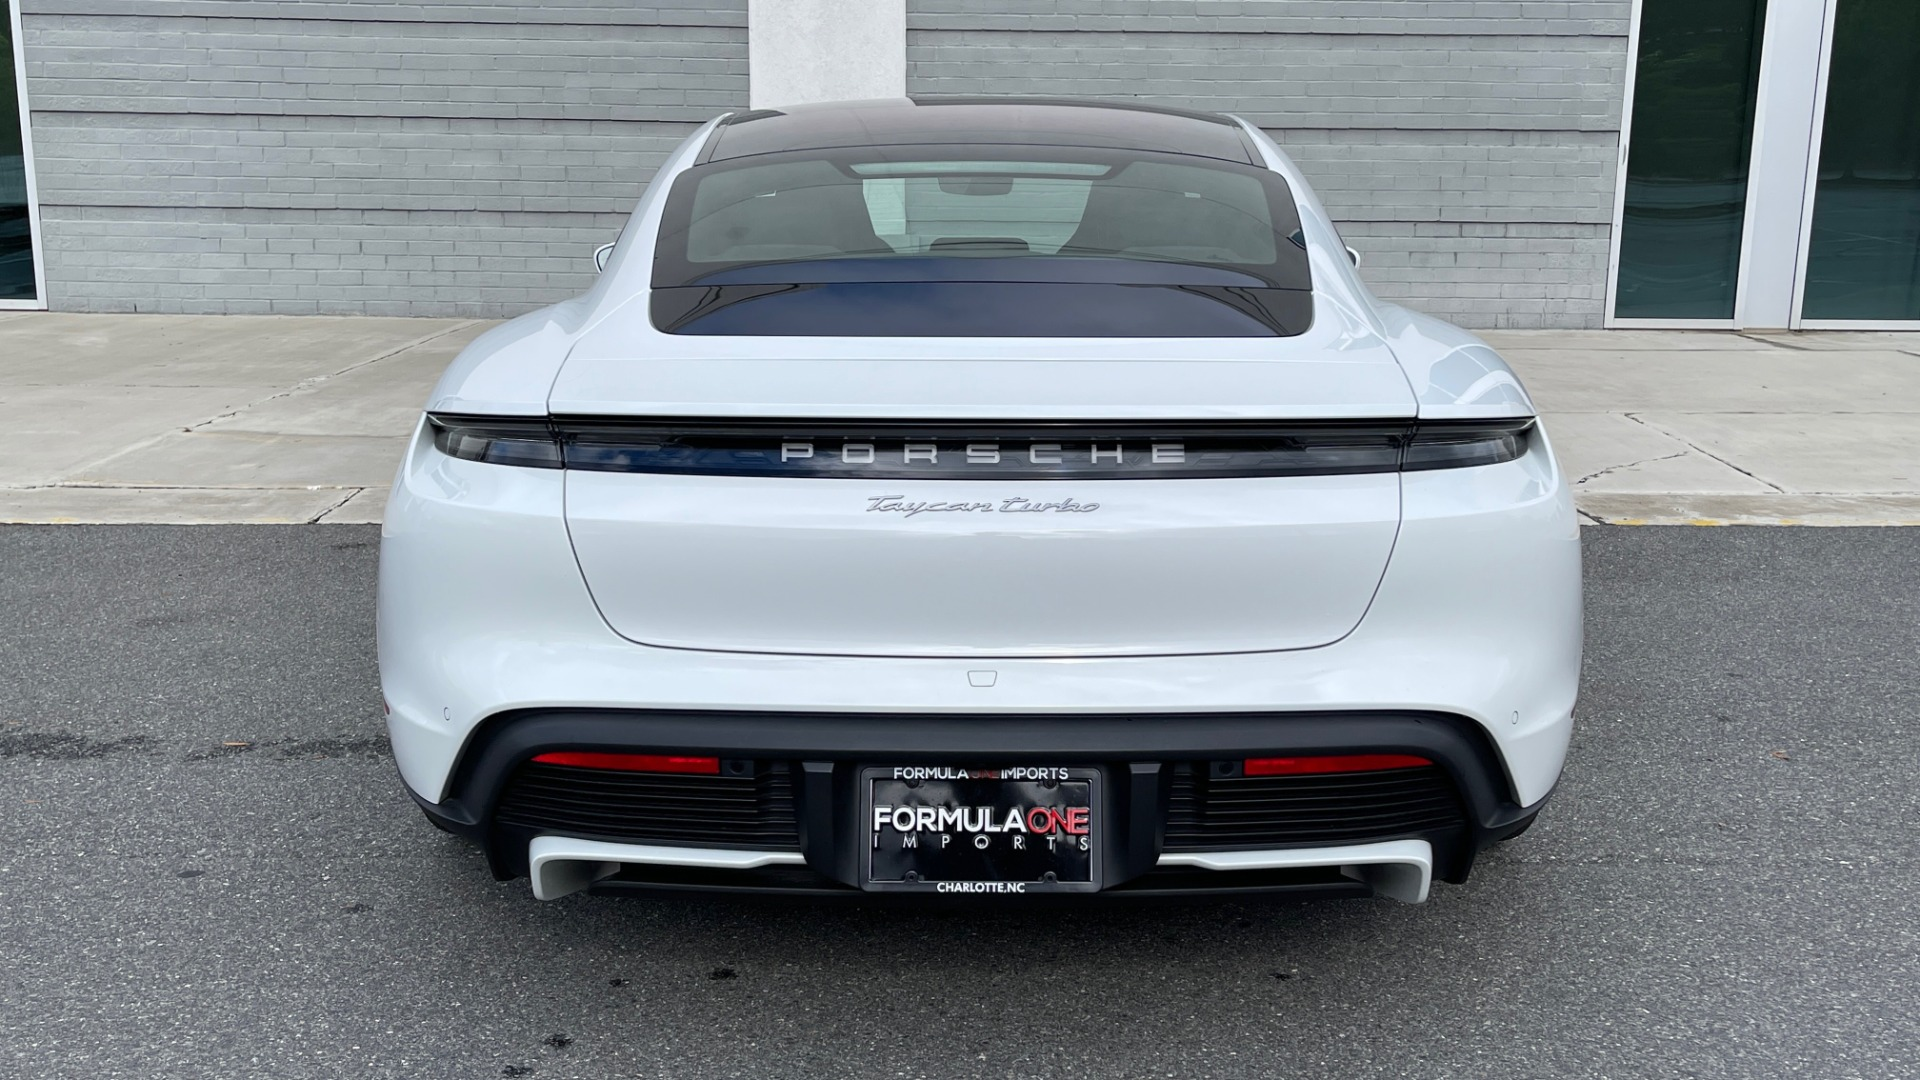 Used 2020 Porsche TAYCAN TURBO SEDAN / AWD / NAV / BOSE / PANO-ROOF / LCA / SURROUND VIEW for sale $162,995 at Formula Imports in Charlotte NC 28227 28